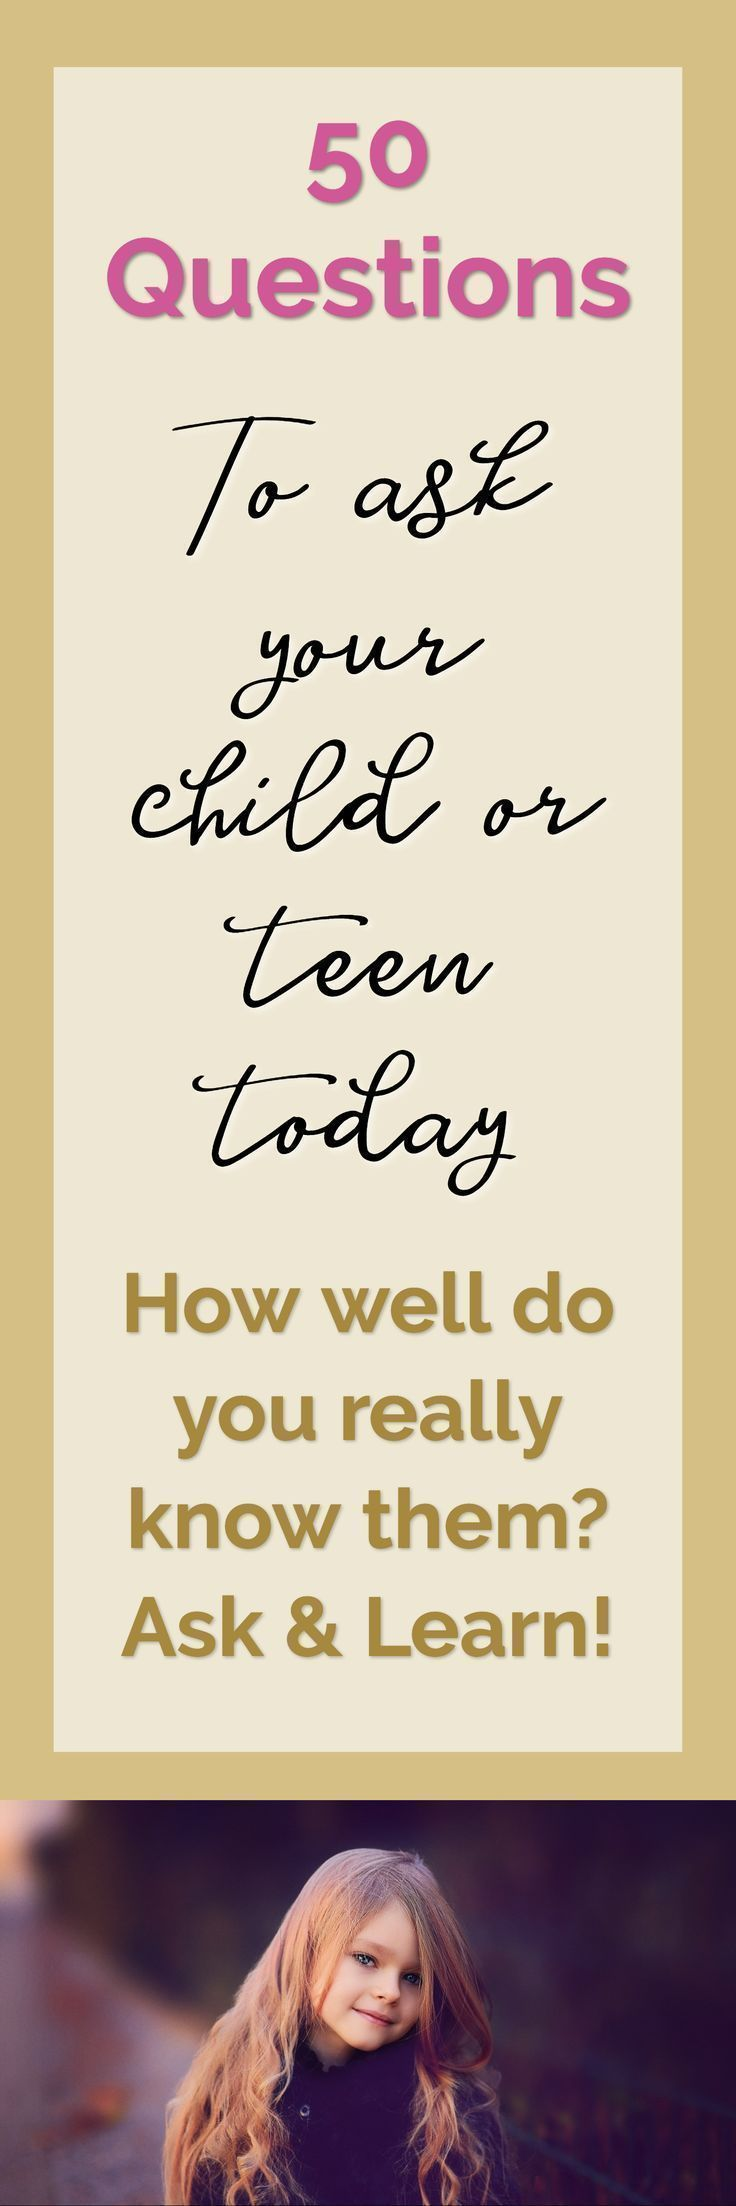 50 Questions To Ask Your Child Or Teen Today | Positive parenting | Quotes for kids | Happy Children | Mommyhood | Tips for moms | Mom advice | Build Resilience | How to raise Confident Kids #teenparentingadvice #parentingteens #parentingadvicequotes